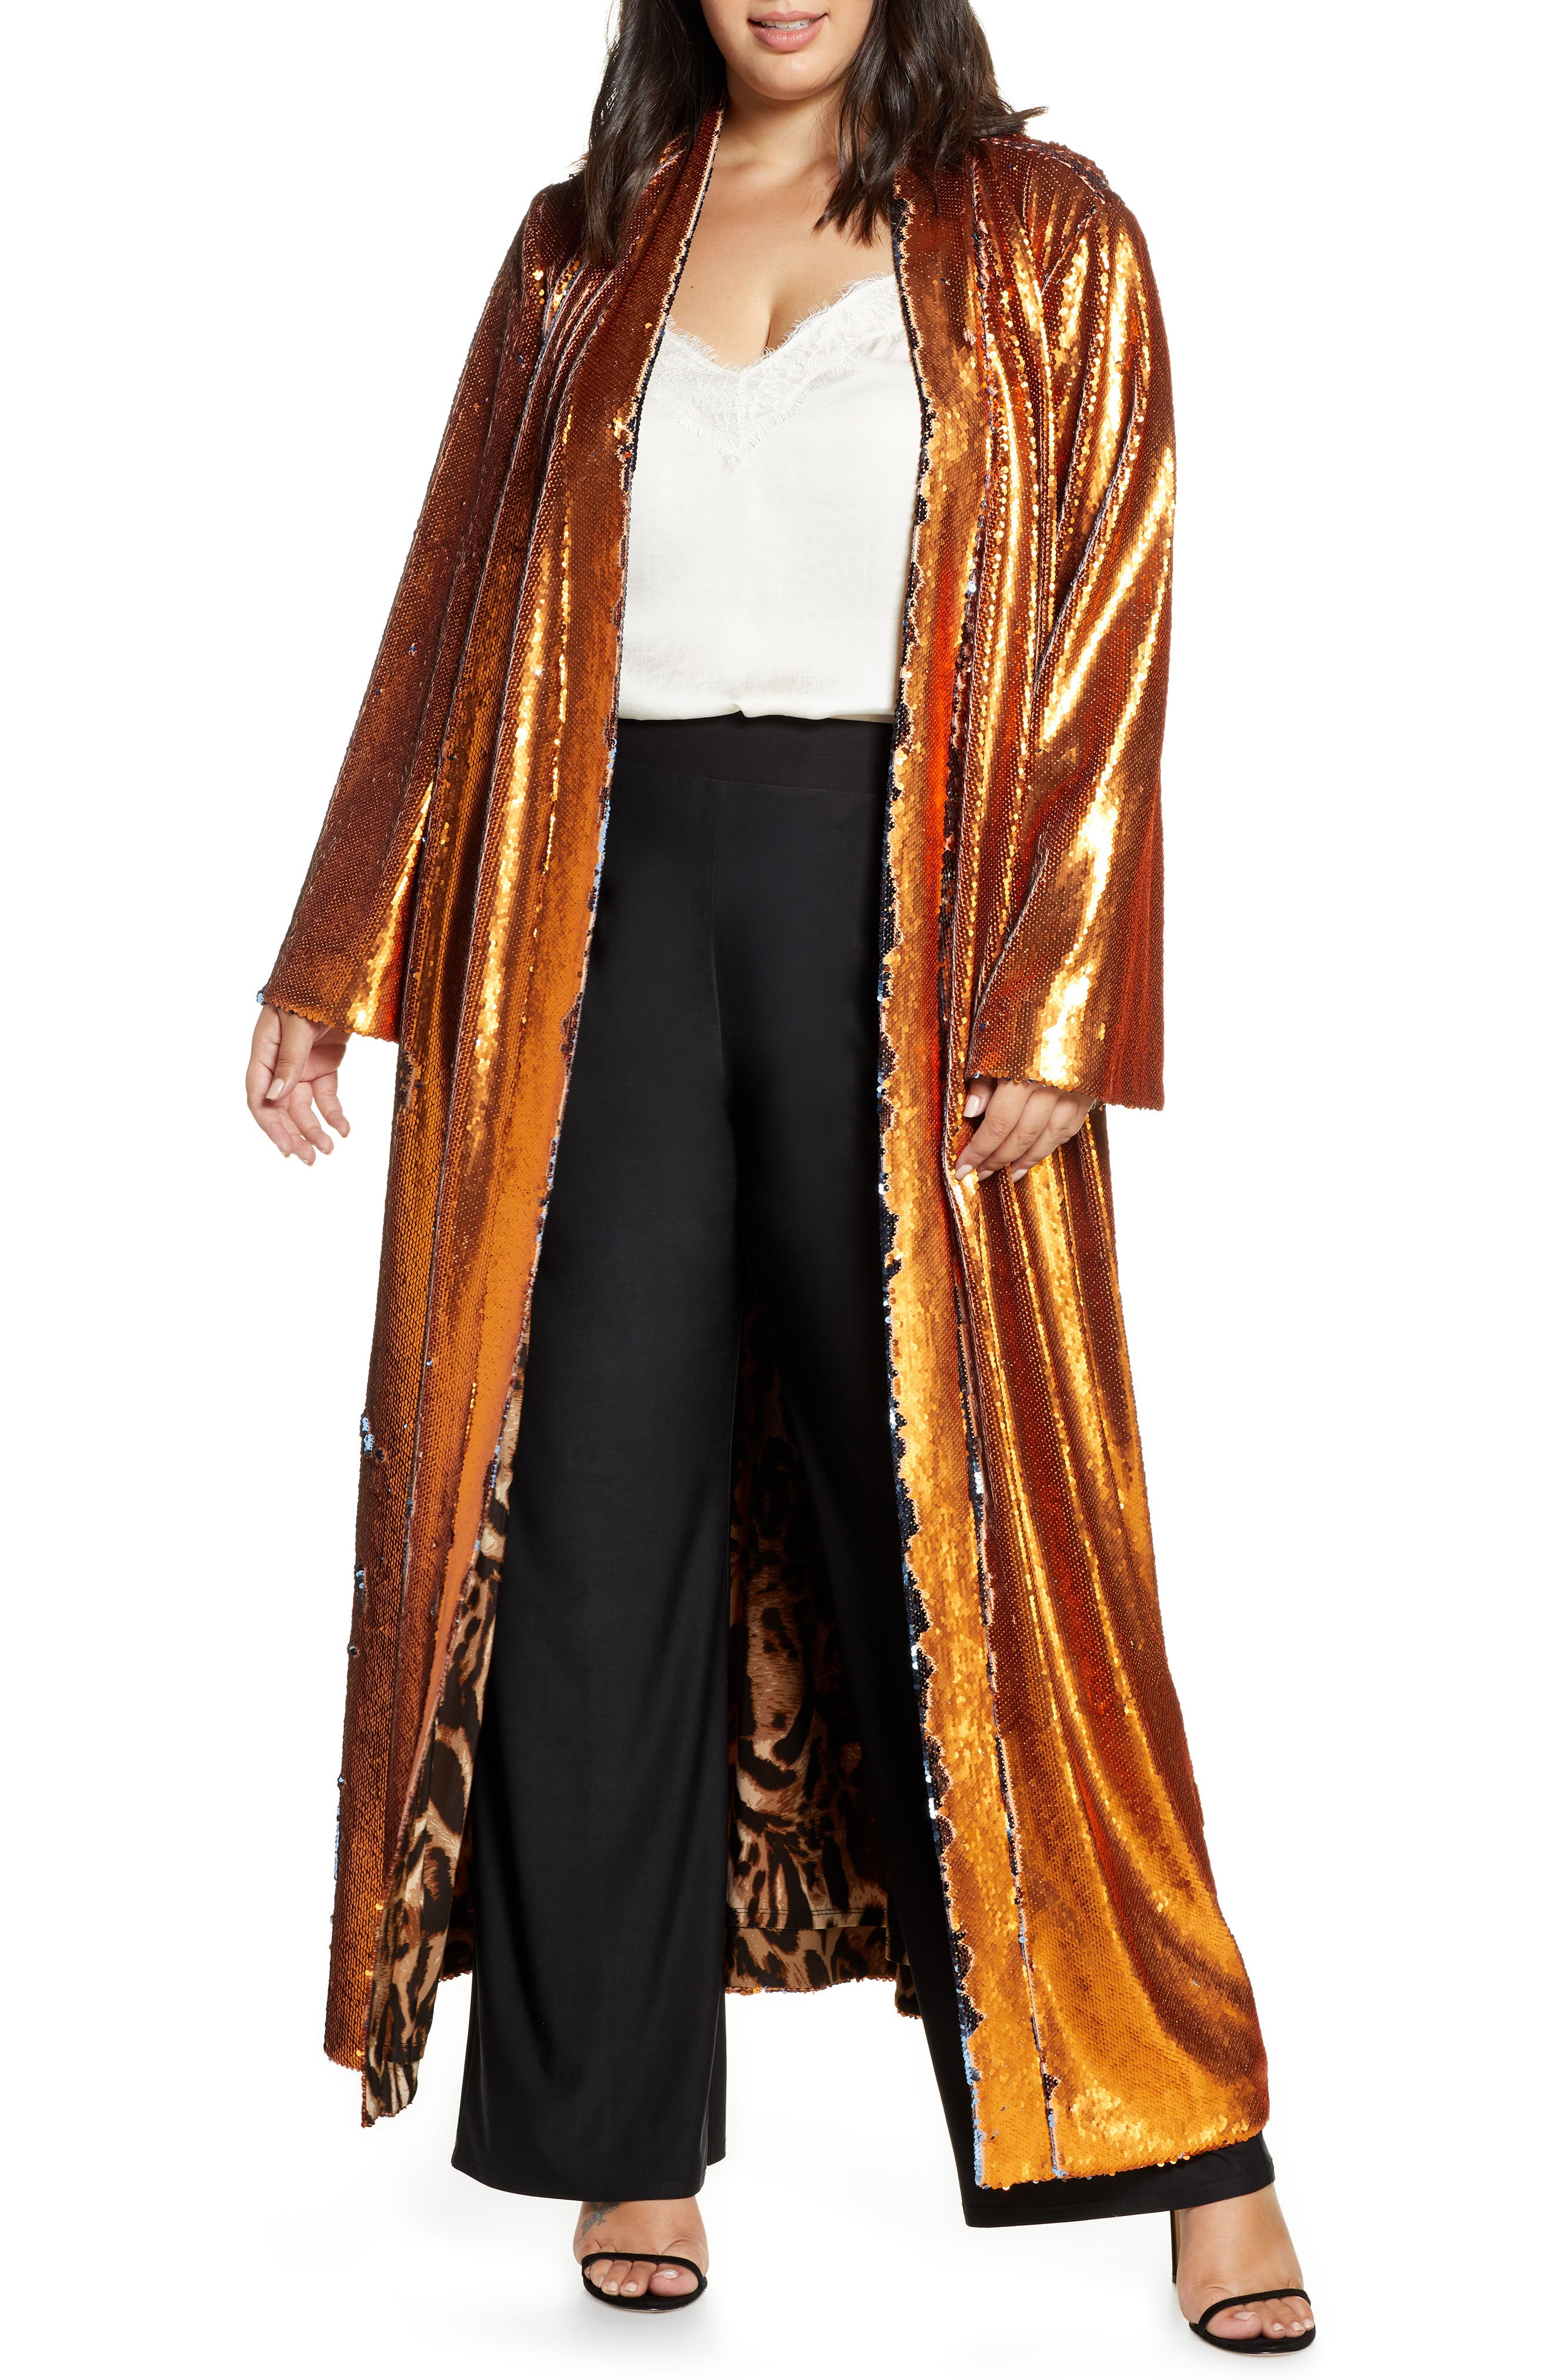 Vintage Coats & Jackets | Retro Coats and Jackets Plus Size Womens Coldesina Sequin Duster Size XL1X - Metallic $298.00 AT vintagedancer.com